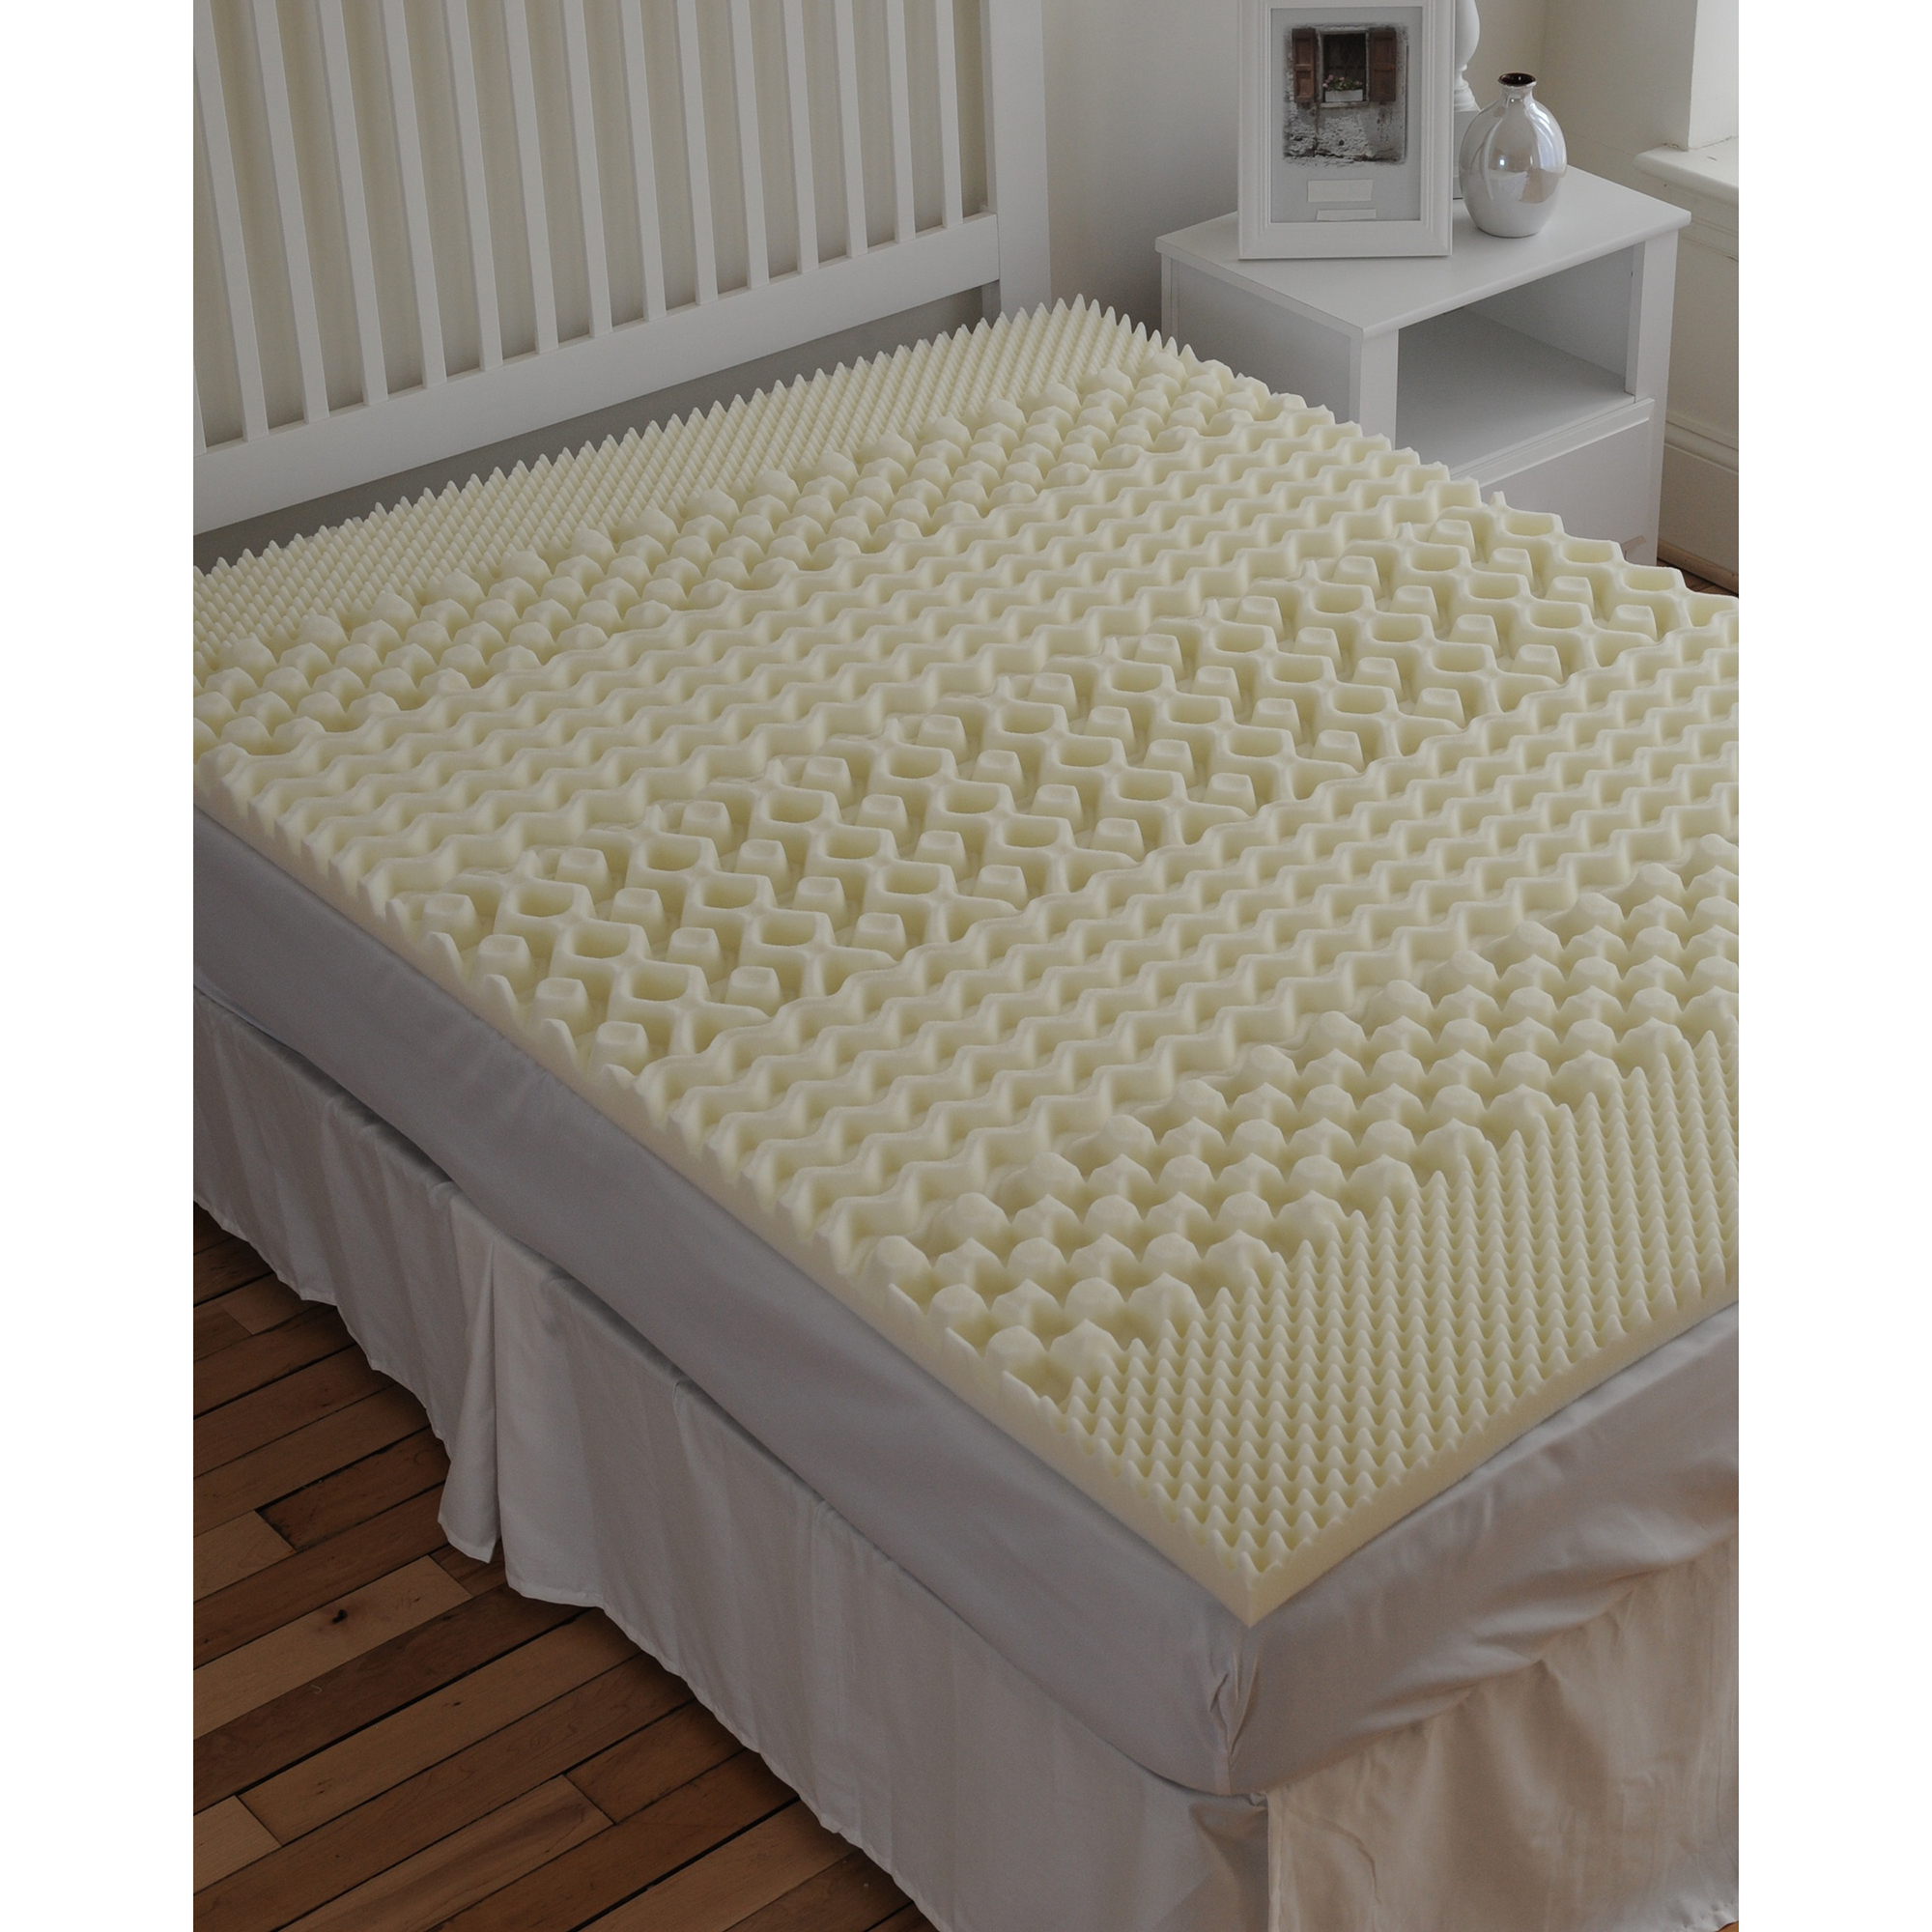 Sleepbetter isotonic 7 zone 2 memory foam mattress topper twin ebay Memory foam mattress topper twin